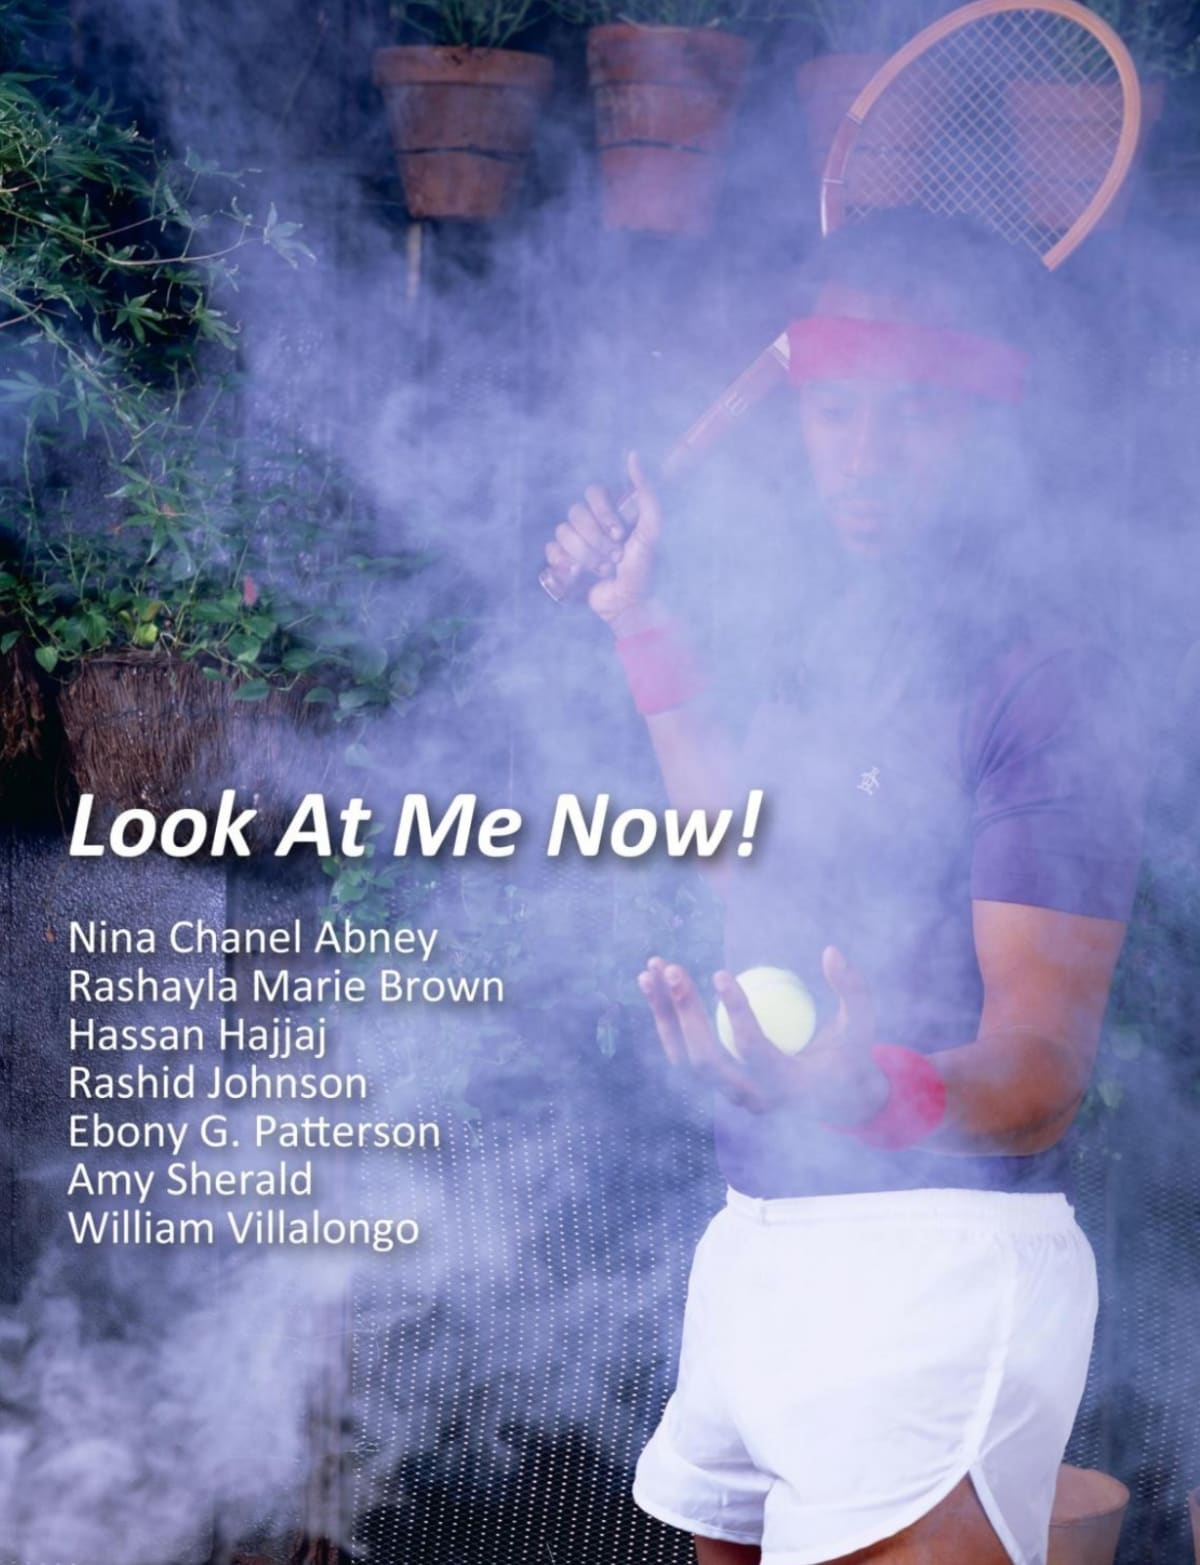 Summer Group Show: Look At Me Now!